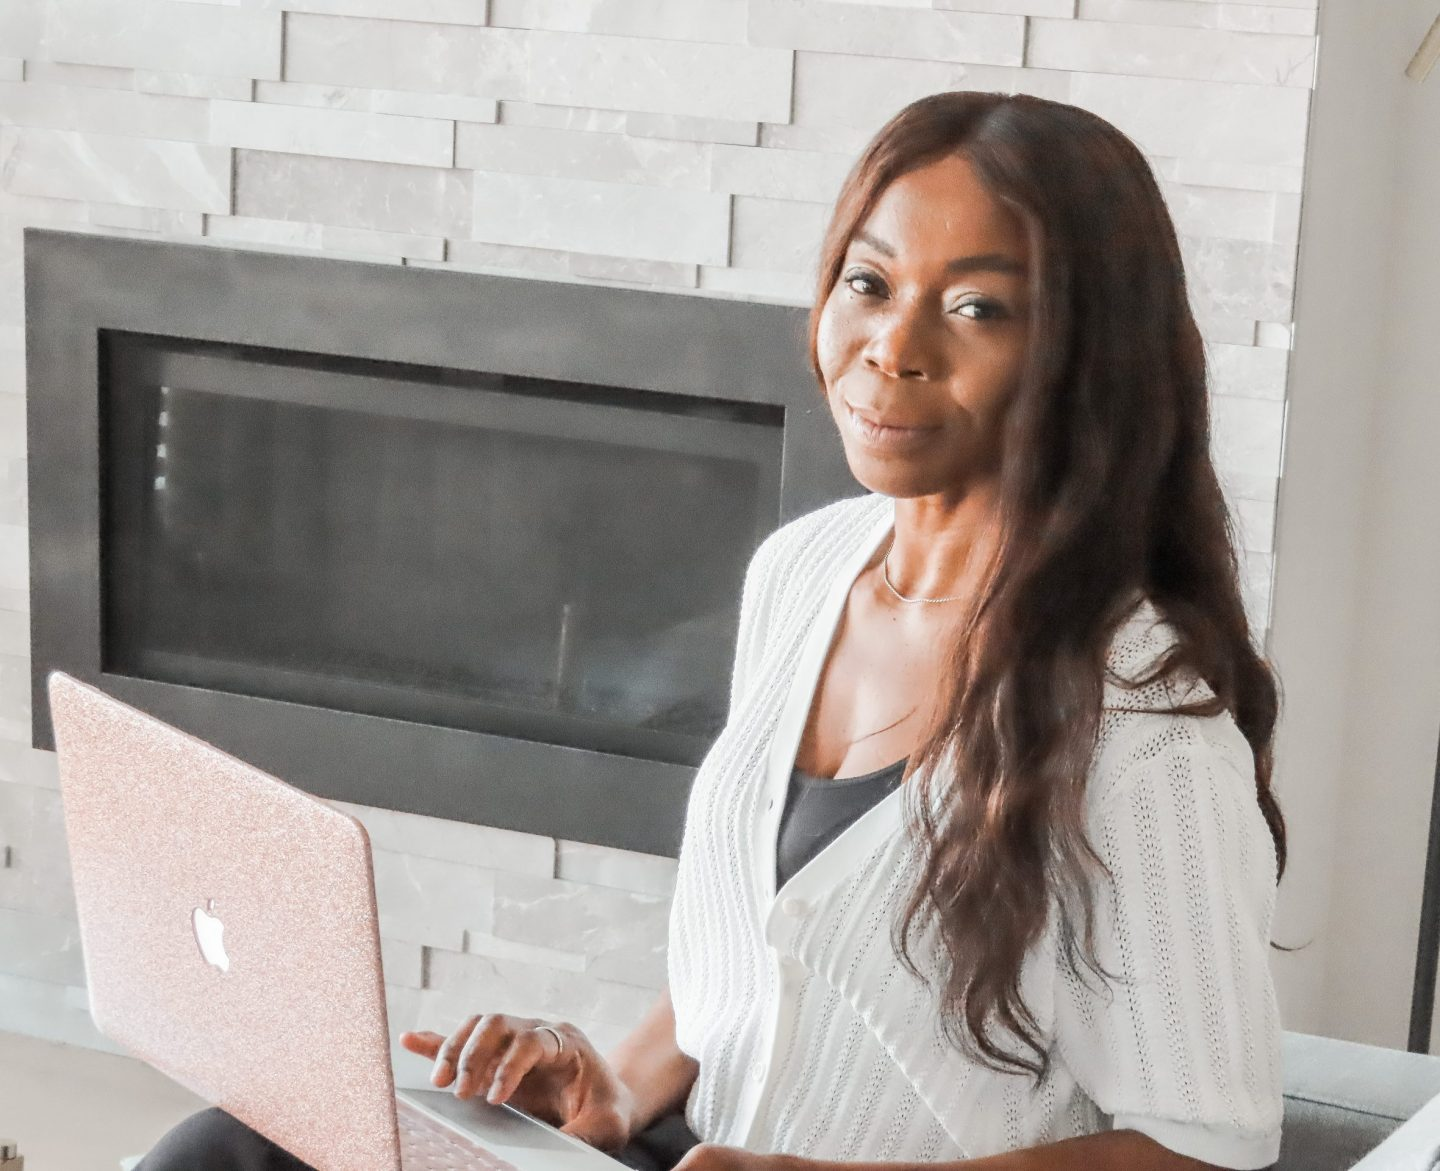 Become A Successful Influencer With Help From The LadyBossBlogger Course